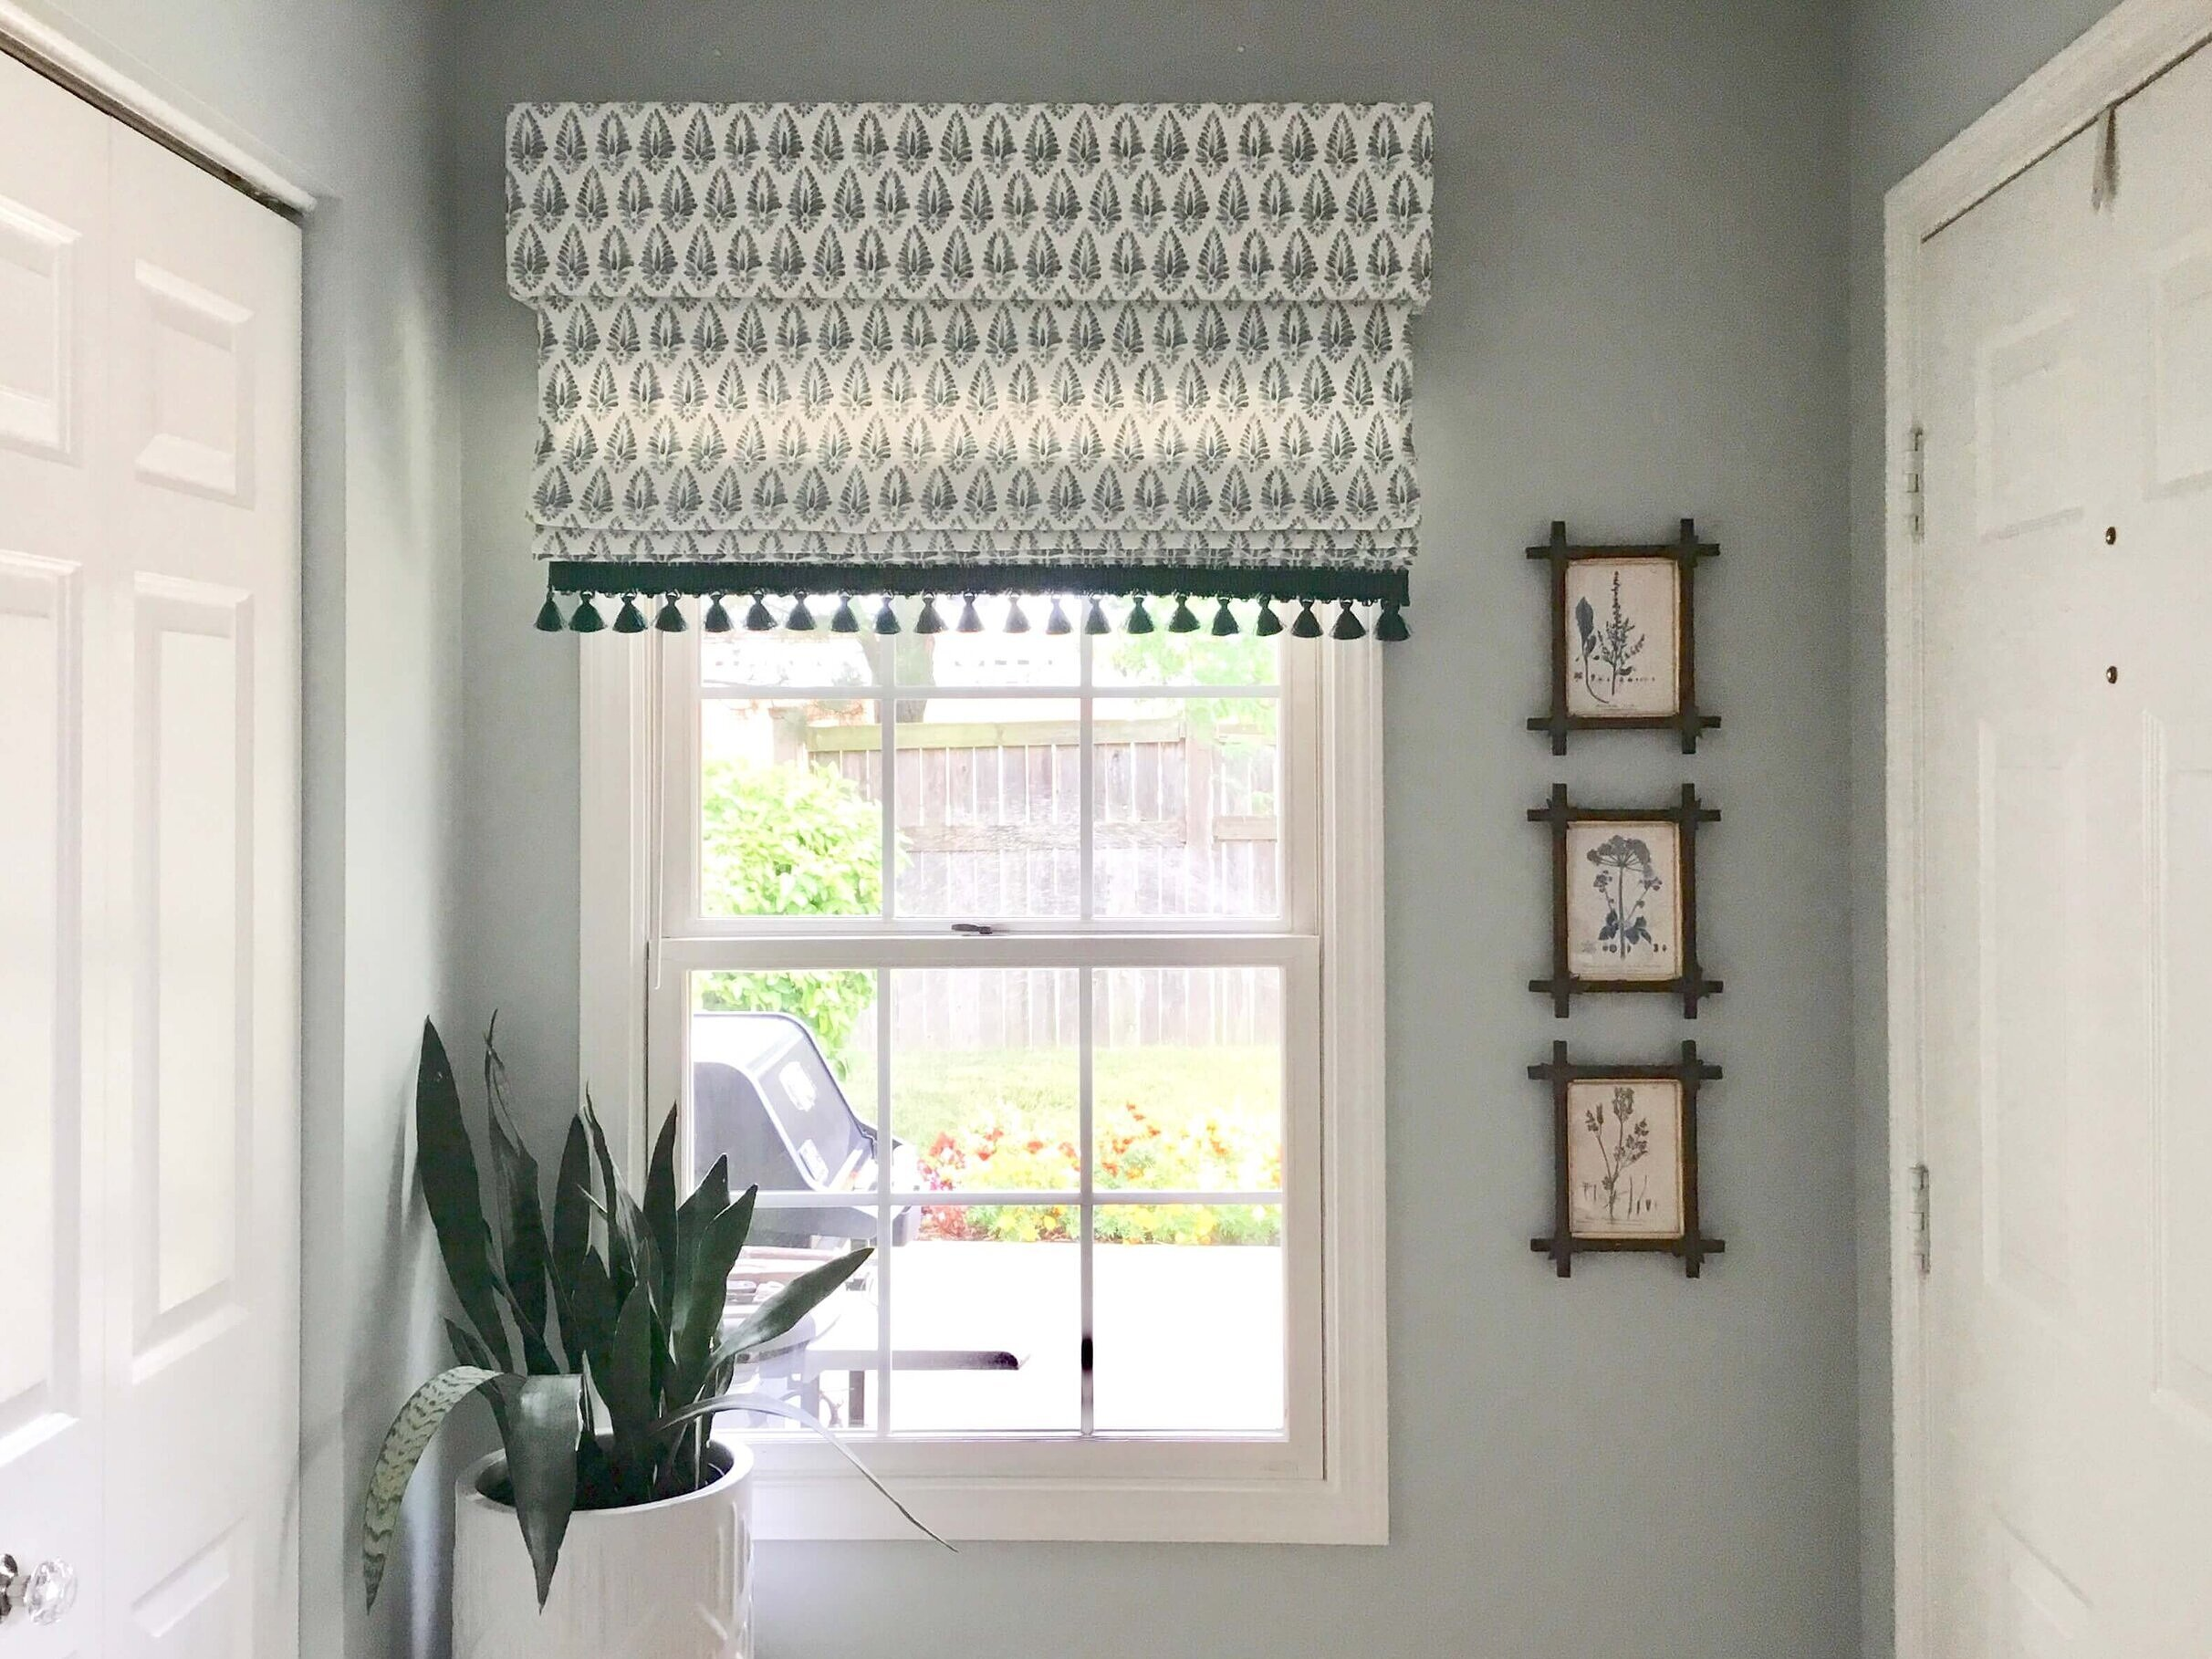 New window shade with trim at entry hall. #romanshade #windowtreatment #windowshade